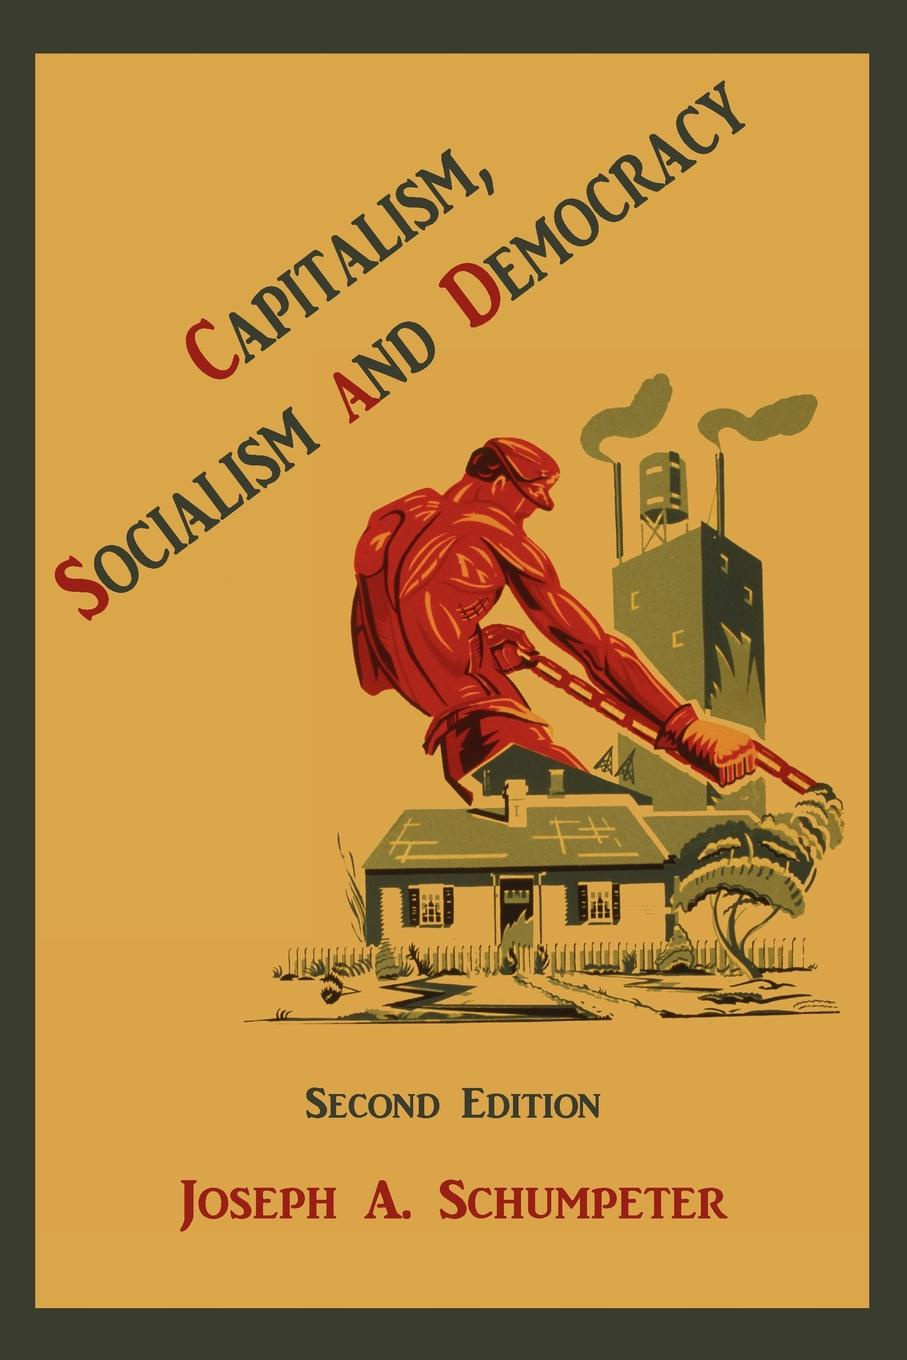 Joseph Alois Schumpeter Capitalism, Socialism and Democracy reinventing capitalism in the